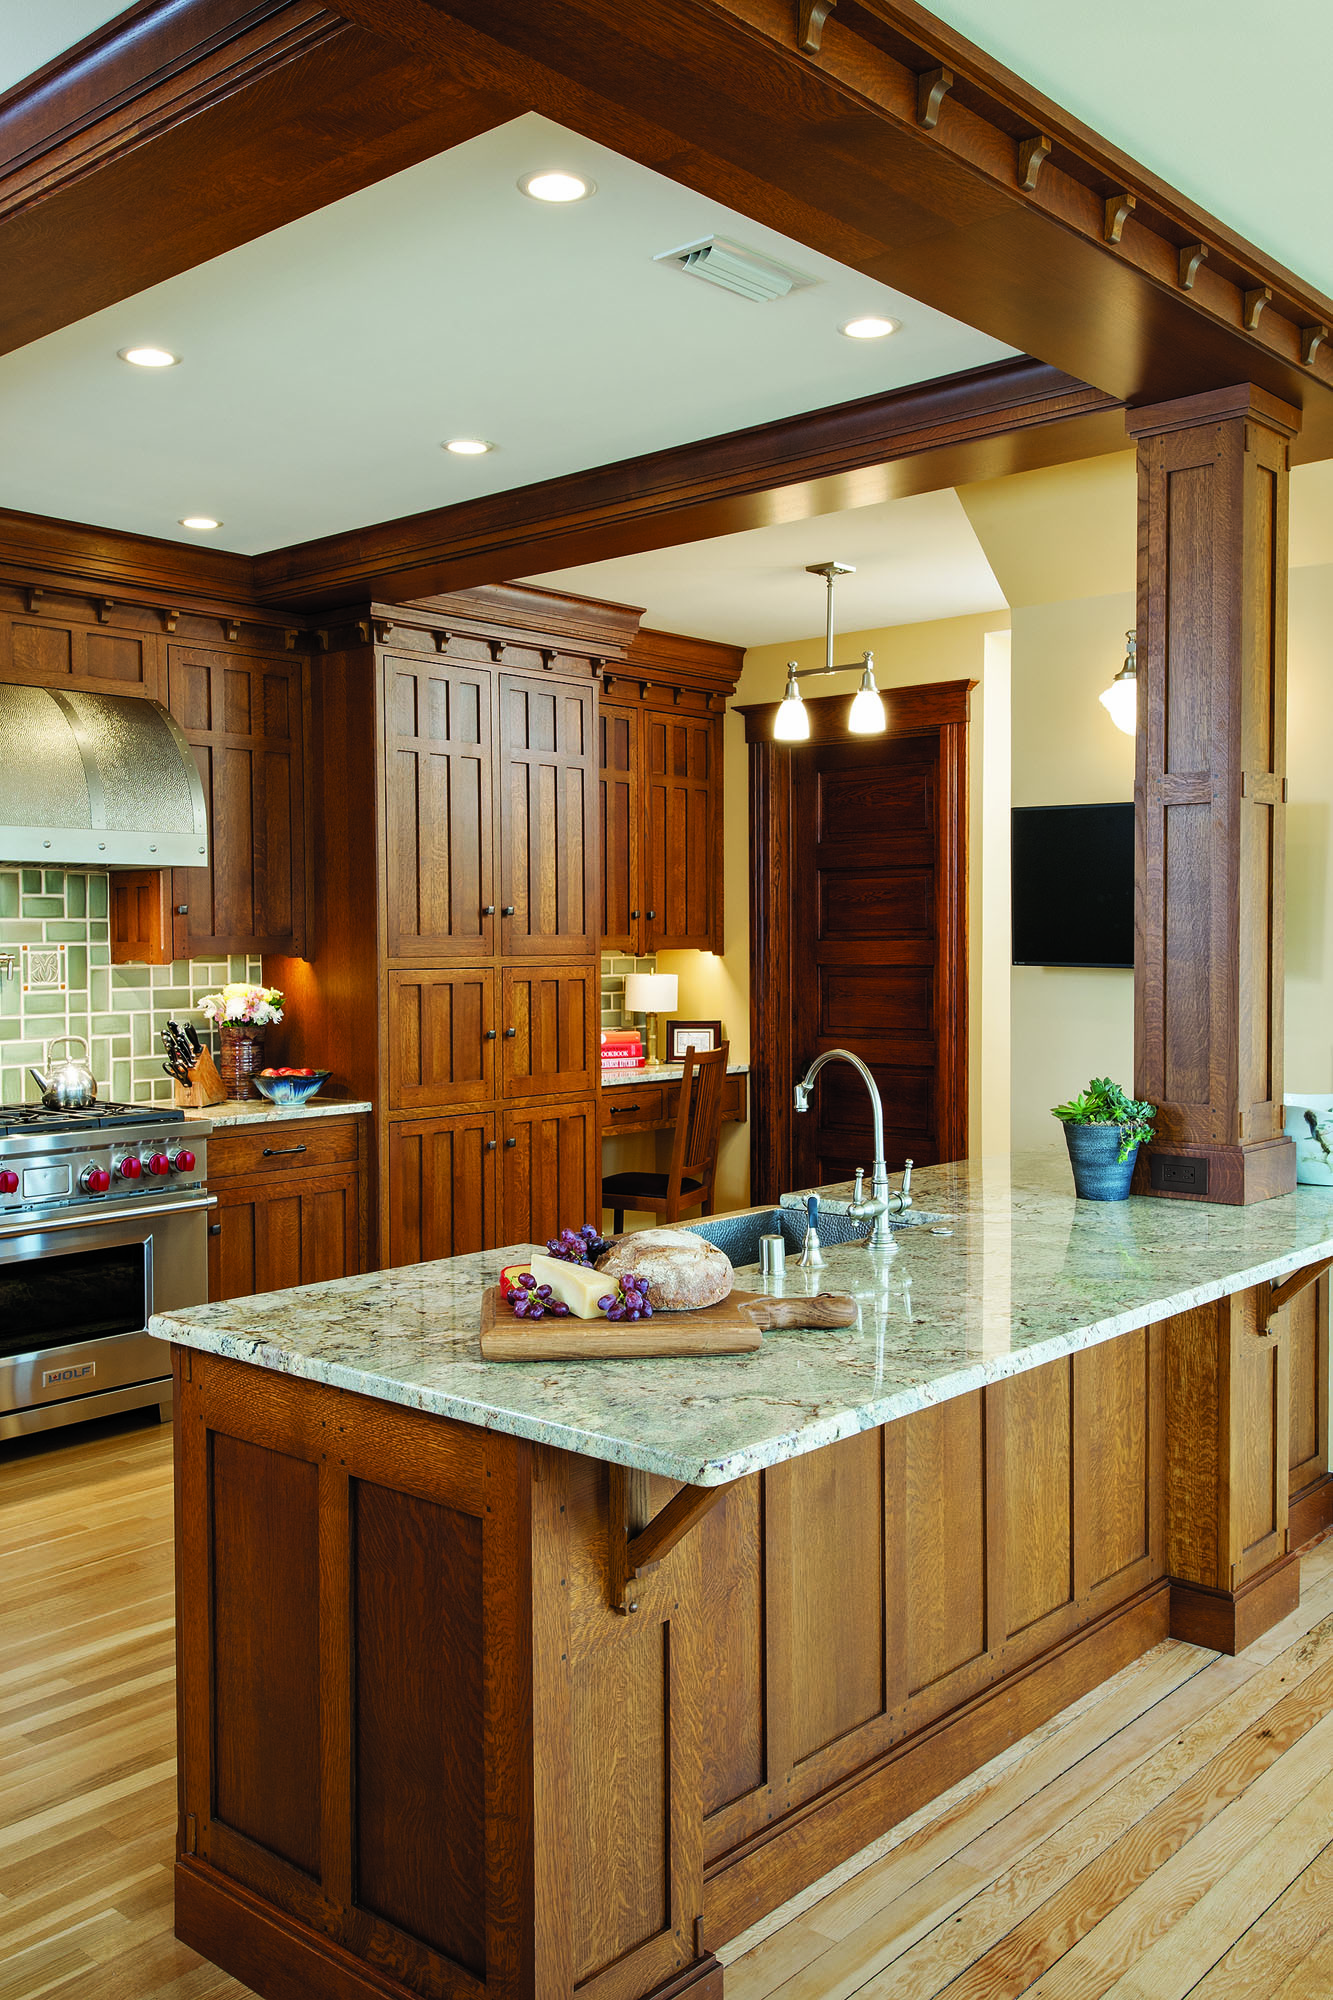 Quarter-sawn white oak and green ceramic tiles give an authentic Craftsman look to this Wisconsin kitchen.